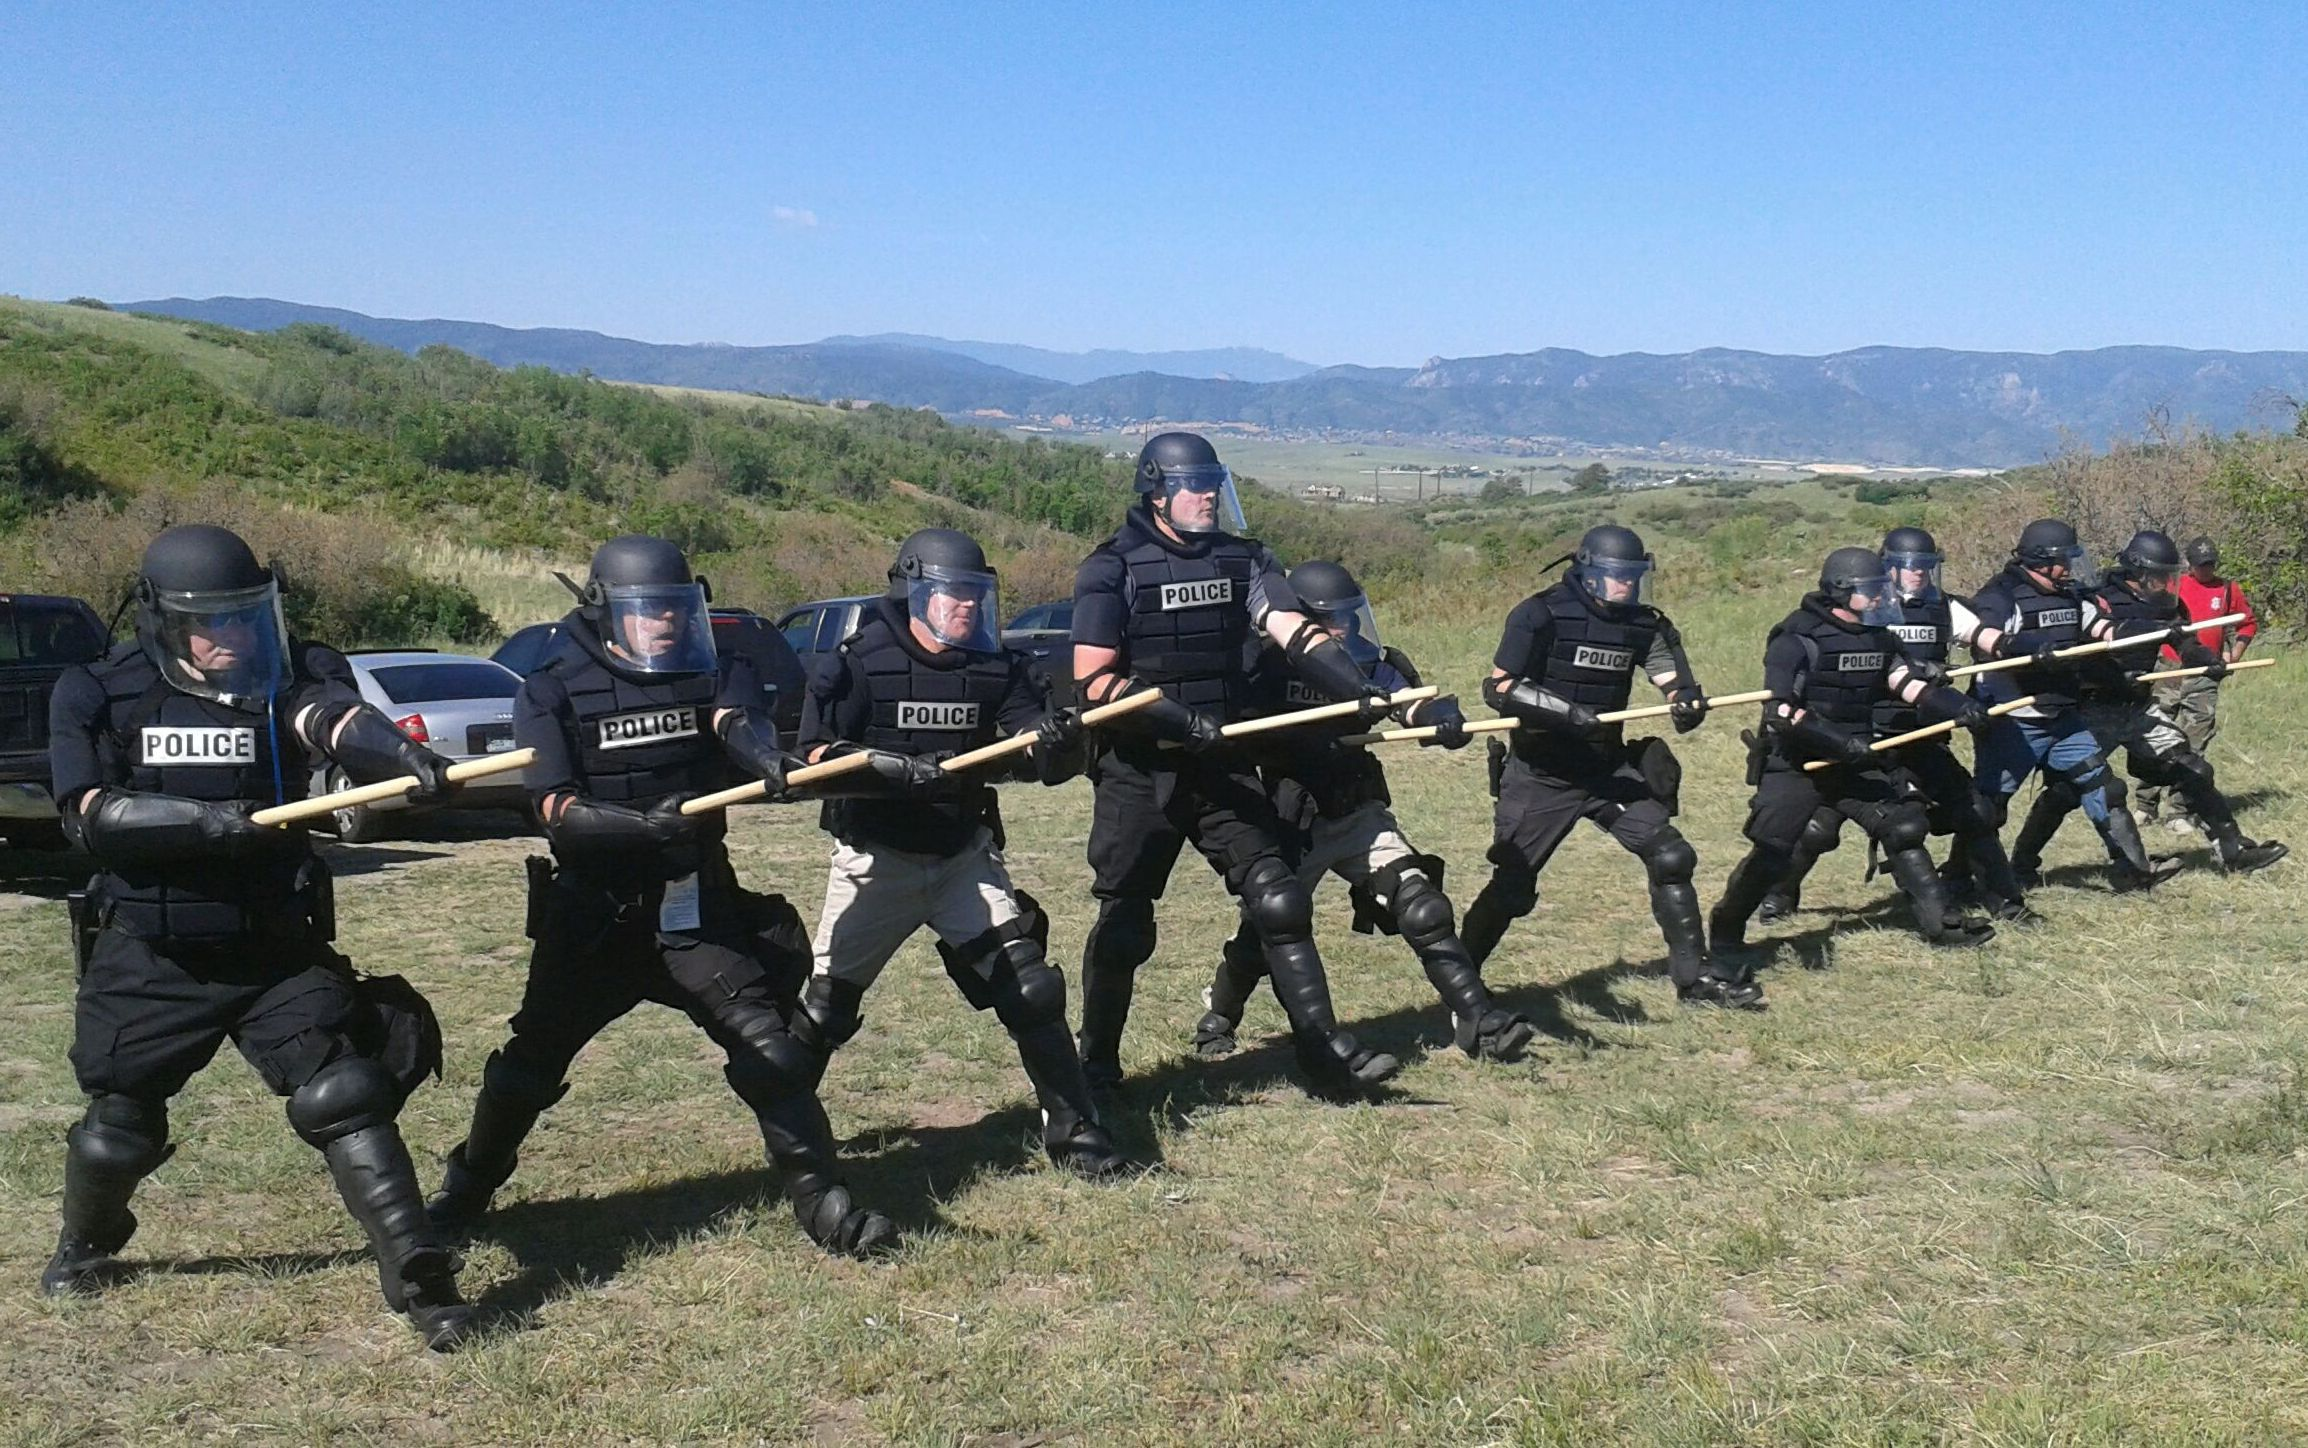 training for riot control with officers in line formation